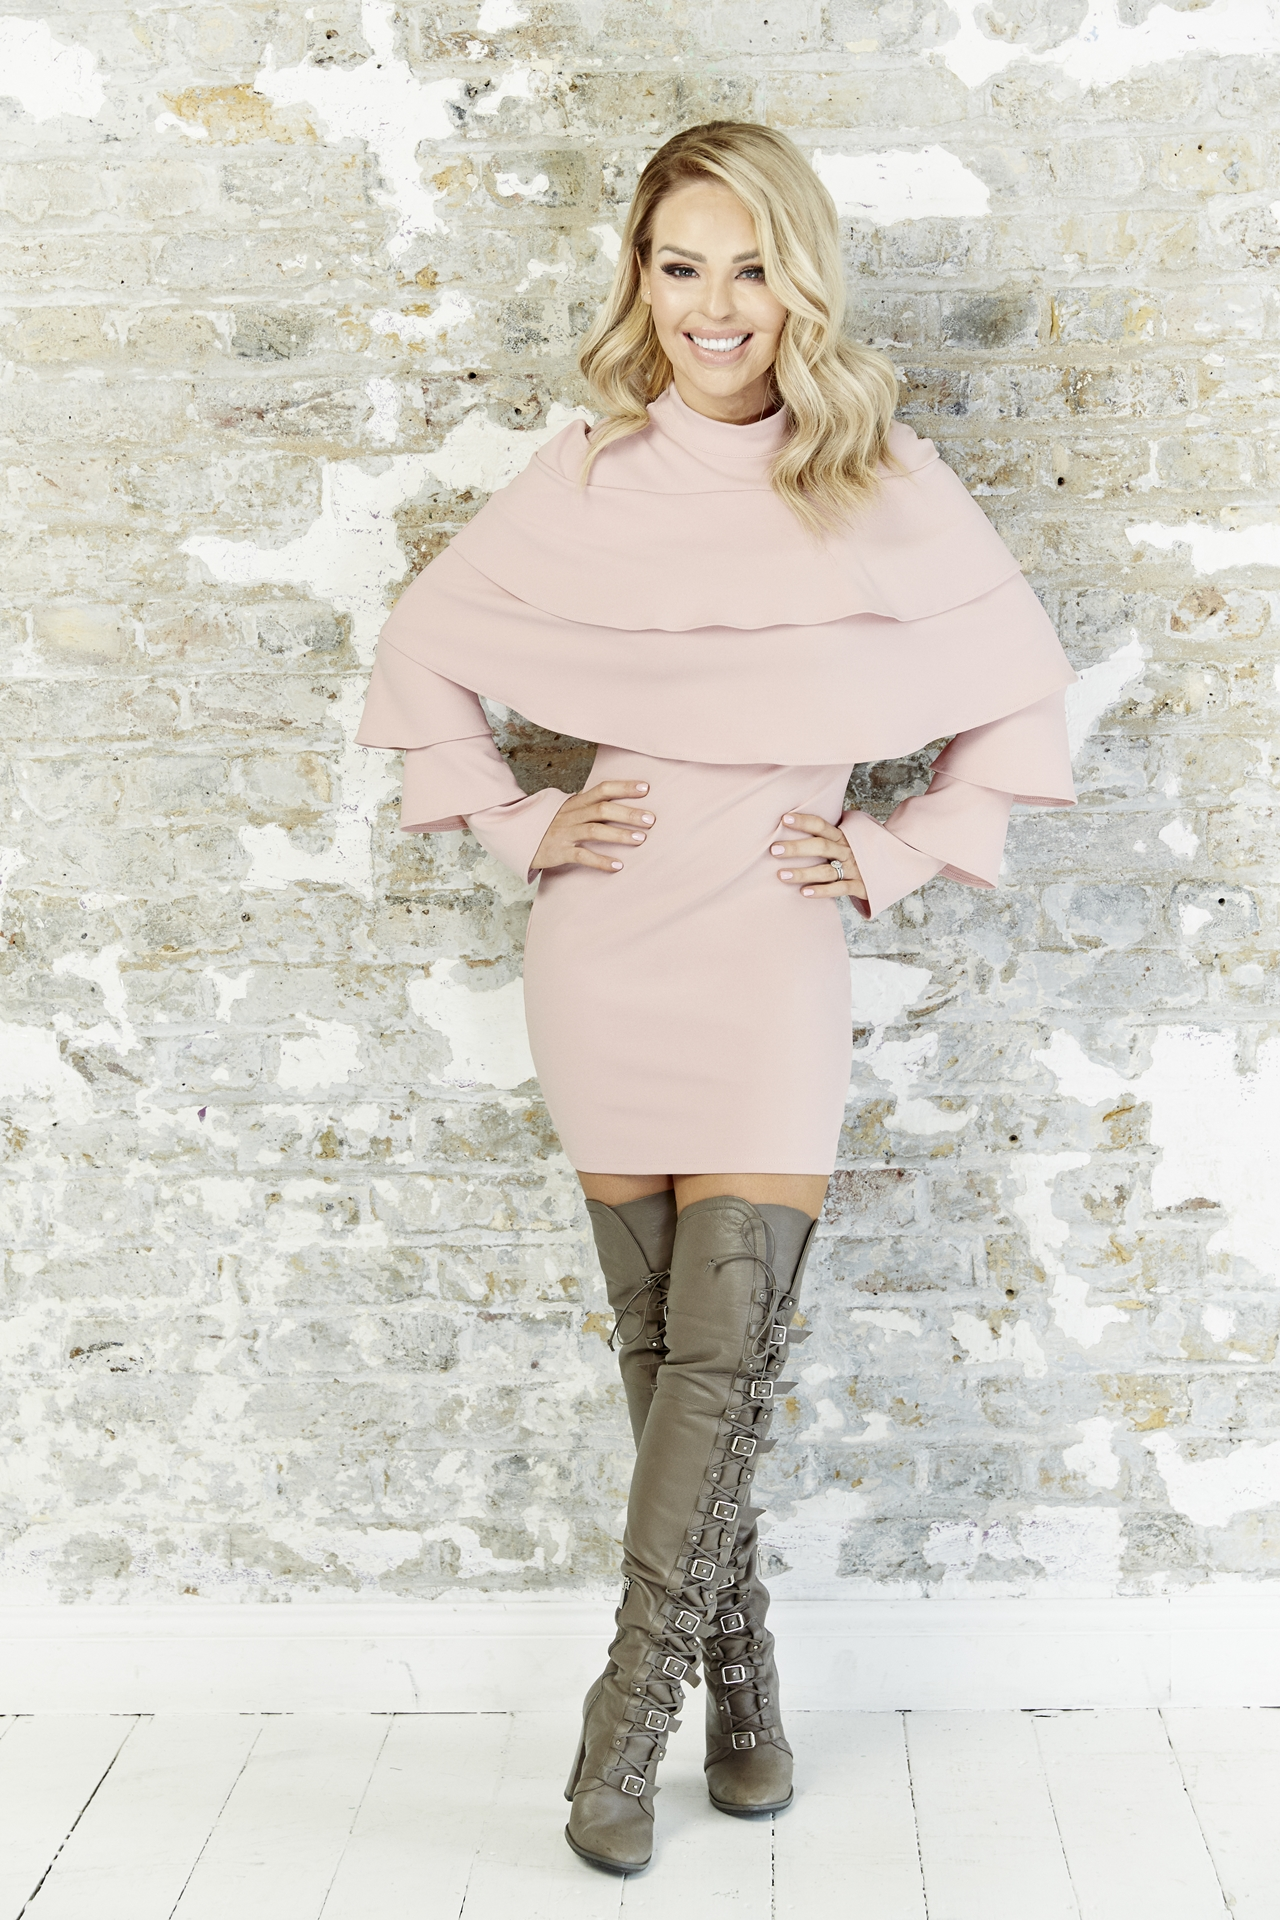 KATIE PIPER WANT THAT TREND CLOTHING LINE